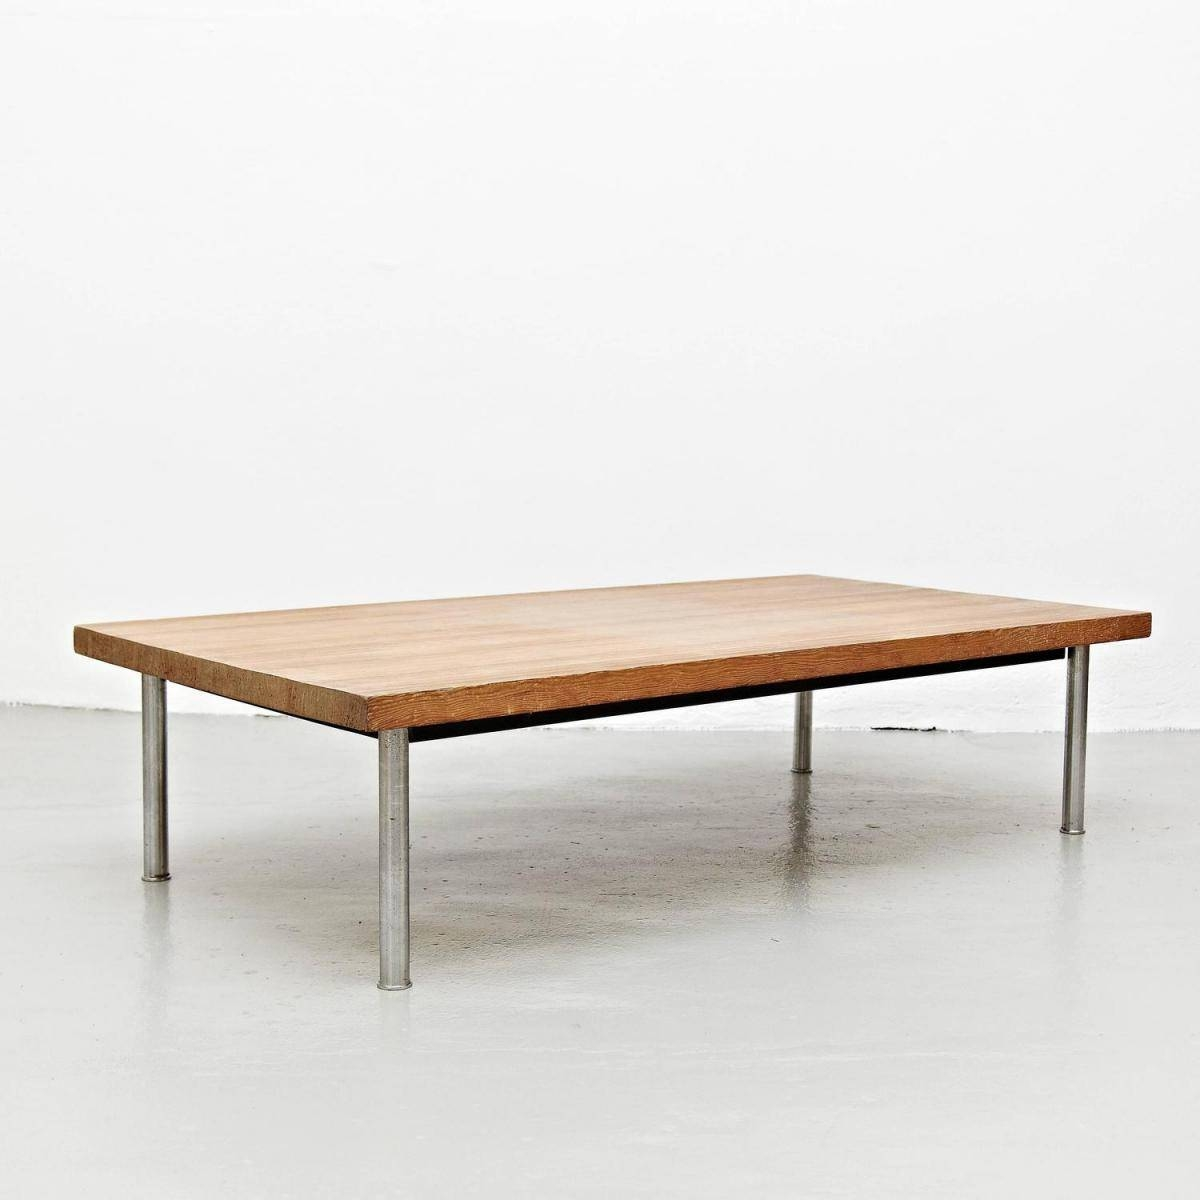 French Wood & Steel Coffee Table, 1950S For Sale At Pamono throughout Wood And Steel Coffee Table (Image 5 of 15)